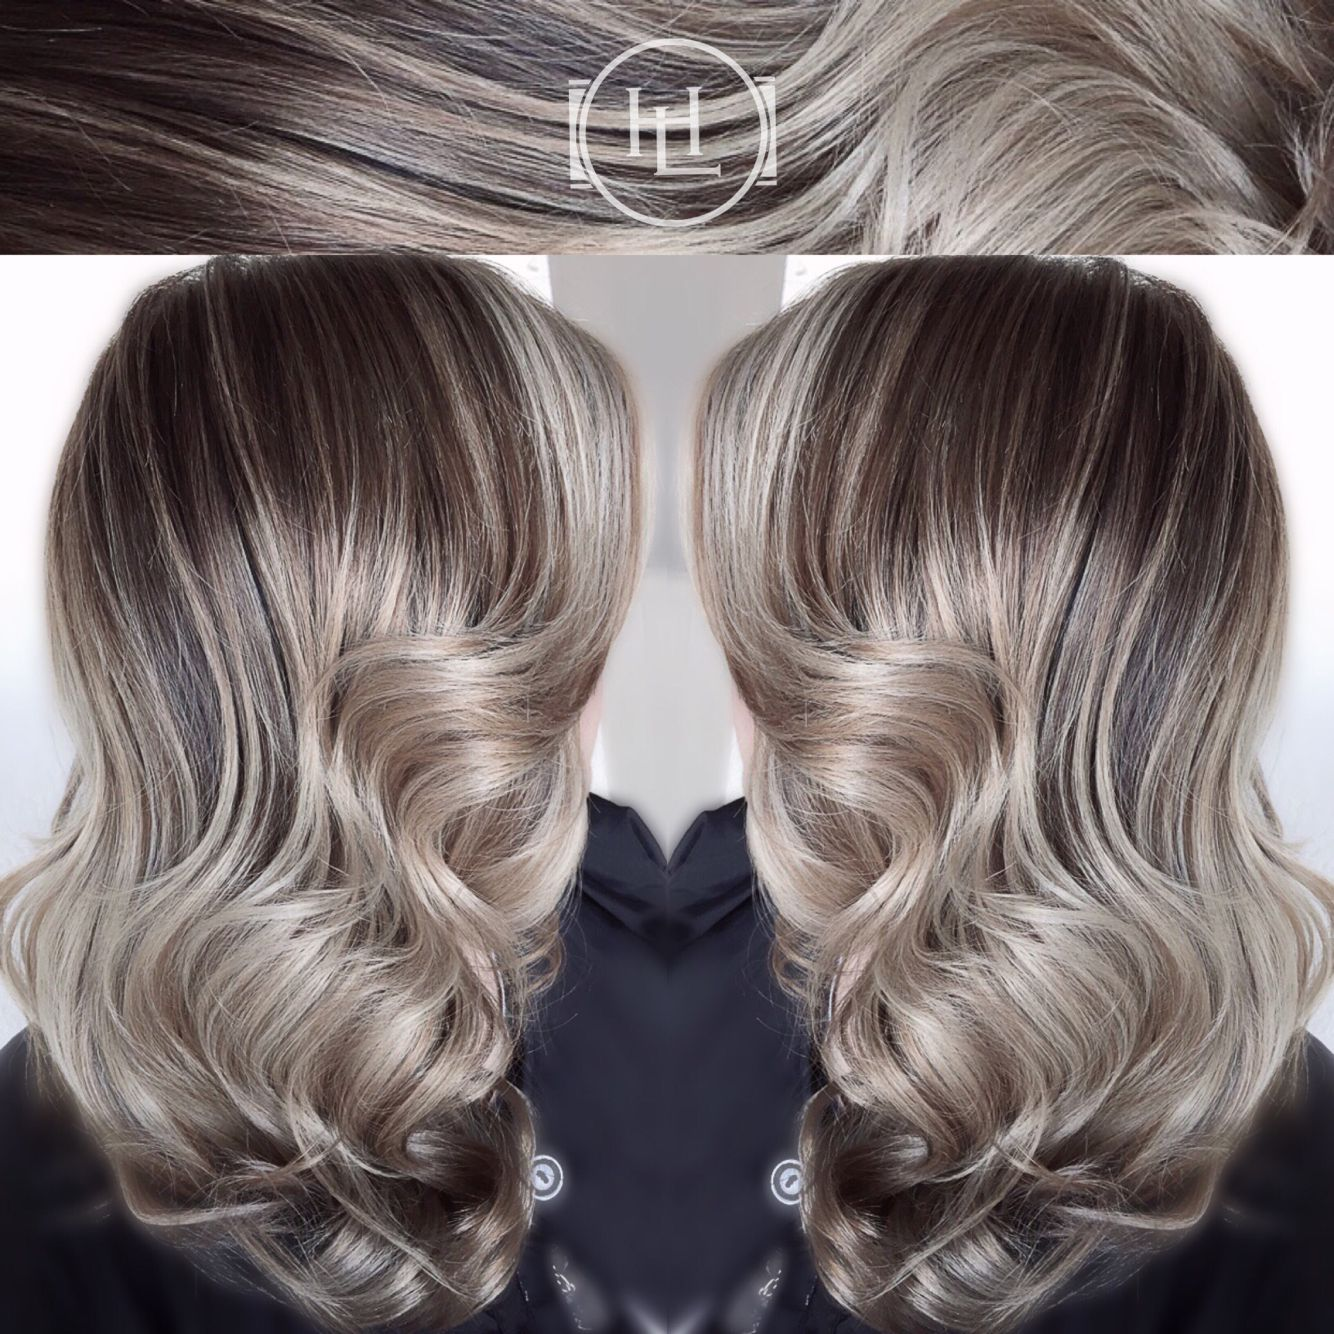 Ash Pearl Blonde Long Hair Soft Curls Balayage Ombre With